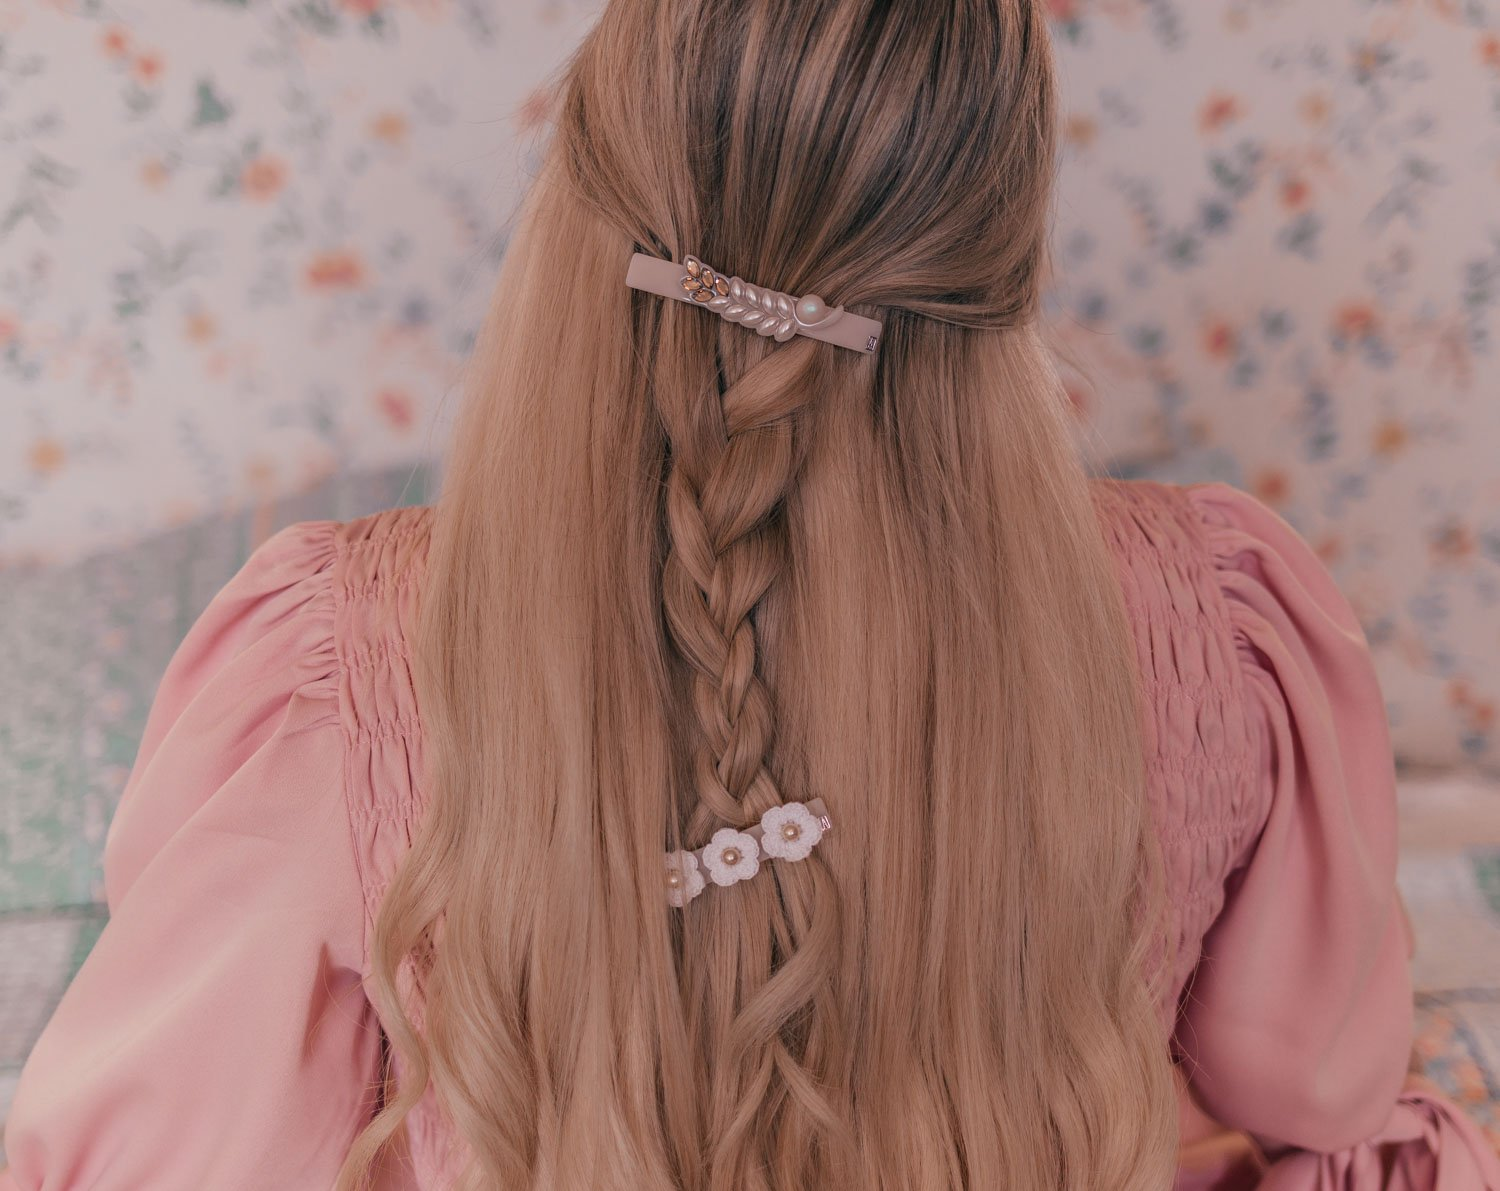 Feminine fashion blogger Elizabeth Hugen of Lizzie in Lace shares 3 Feminine Summer Hair Accessories to Wear Now including these gorgeous Alexandre de Paris hair barrettes to accessorize a romantic braided hairstyle